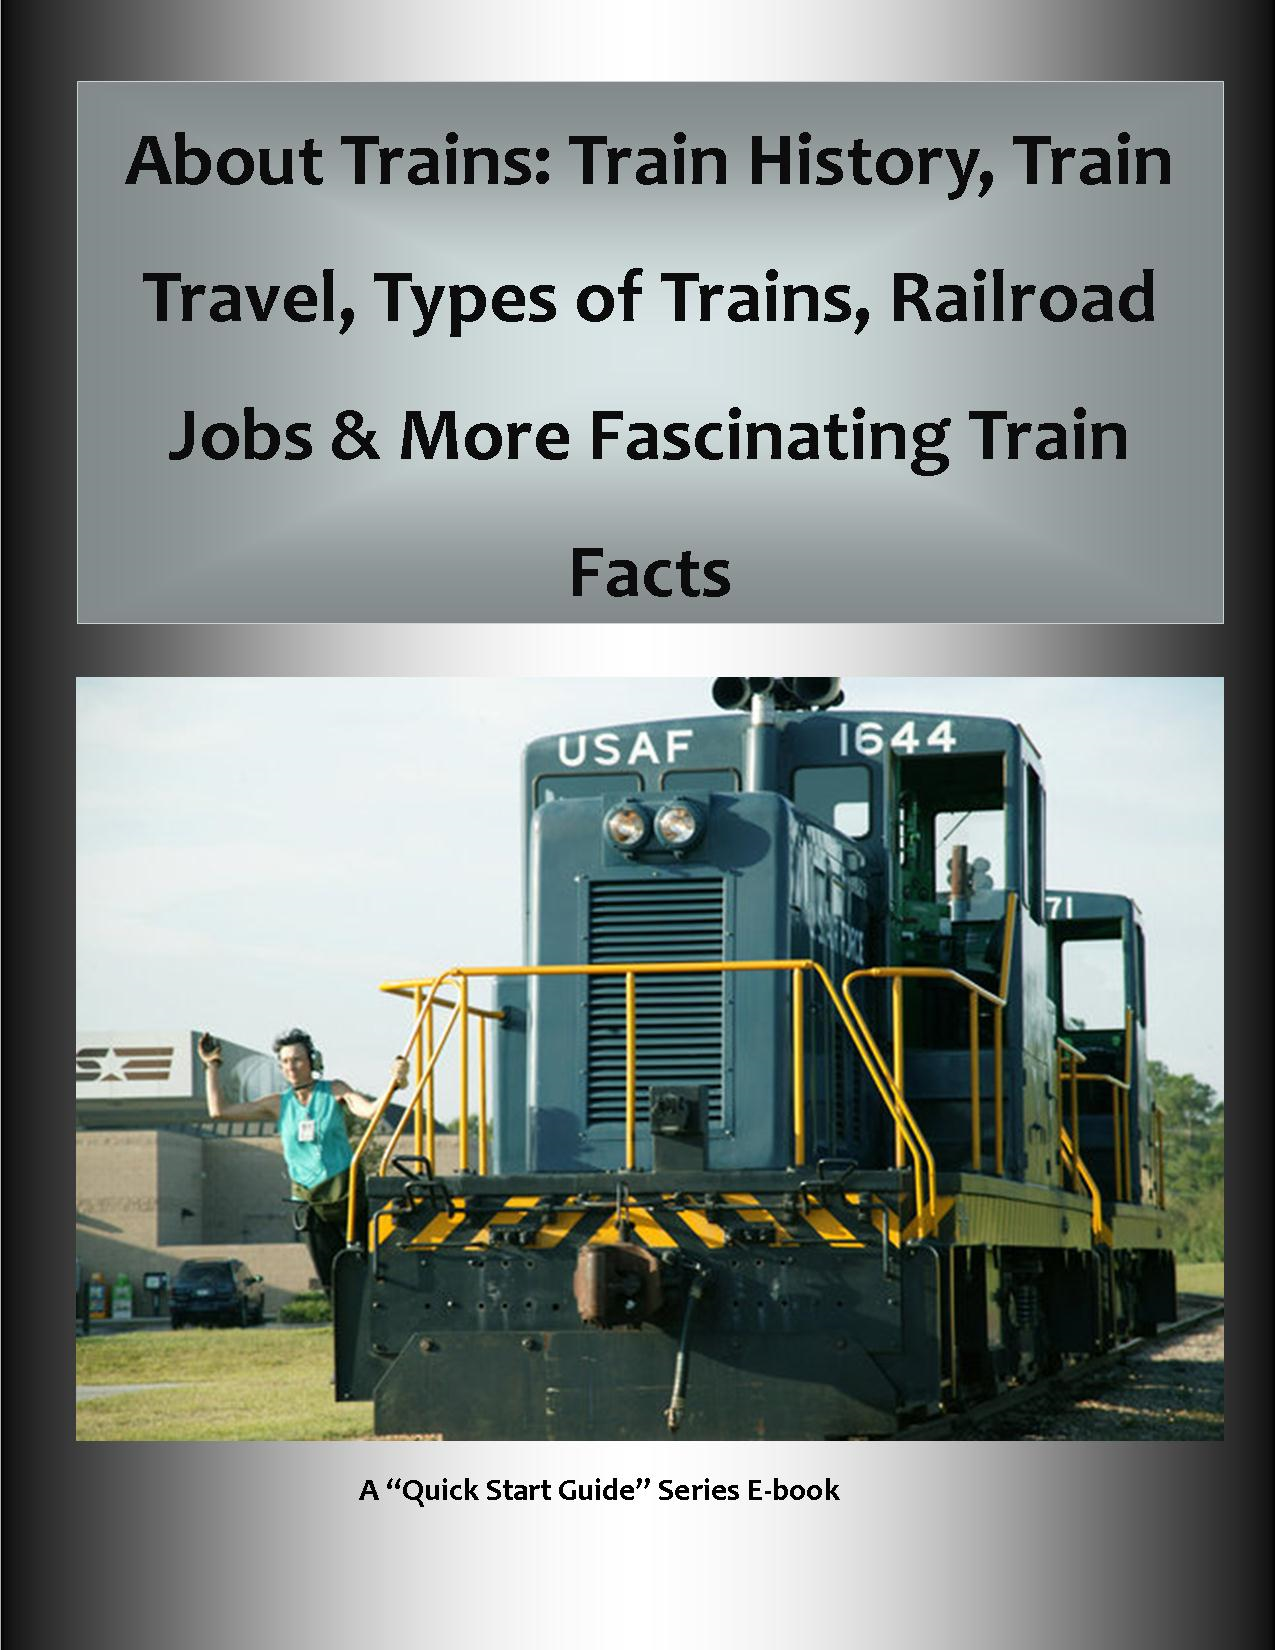 About Trains: Train History, Train Travel, Types of Trains, Railroad Jobs & More Fascinating Train Facts